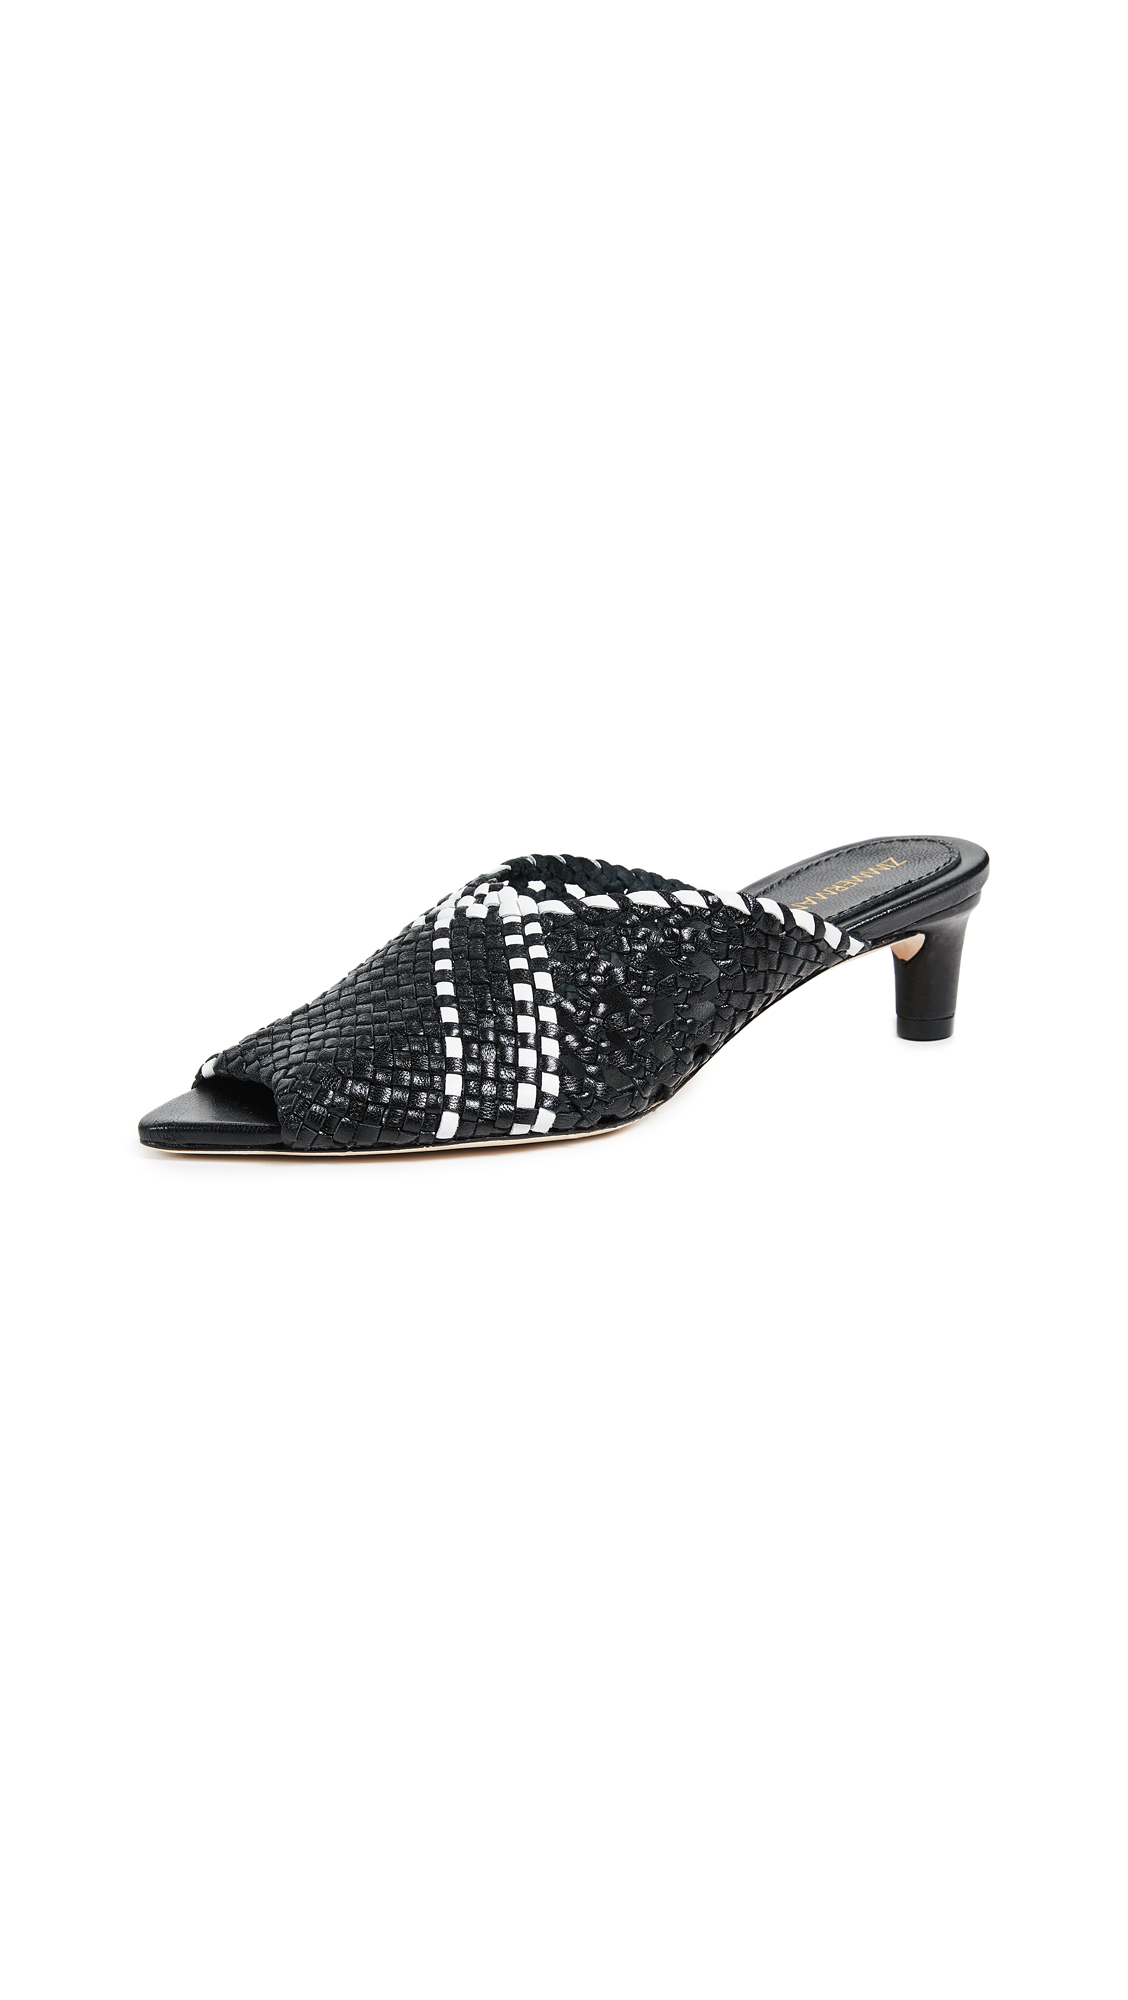 Zimmermann Kitten Heel Mules - Black/White